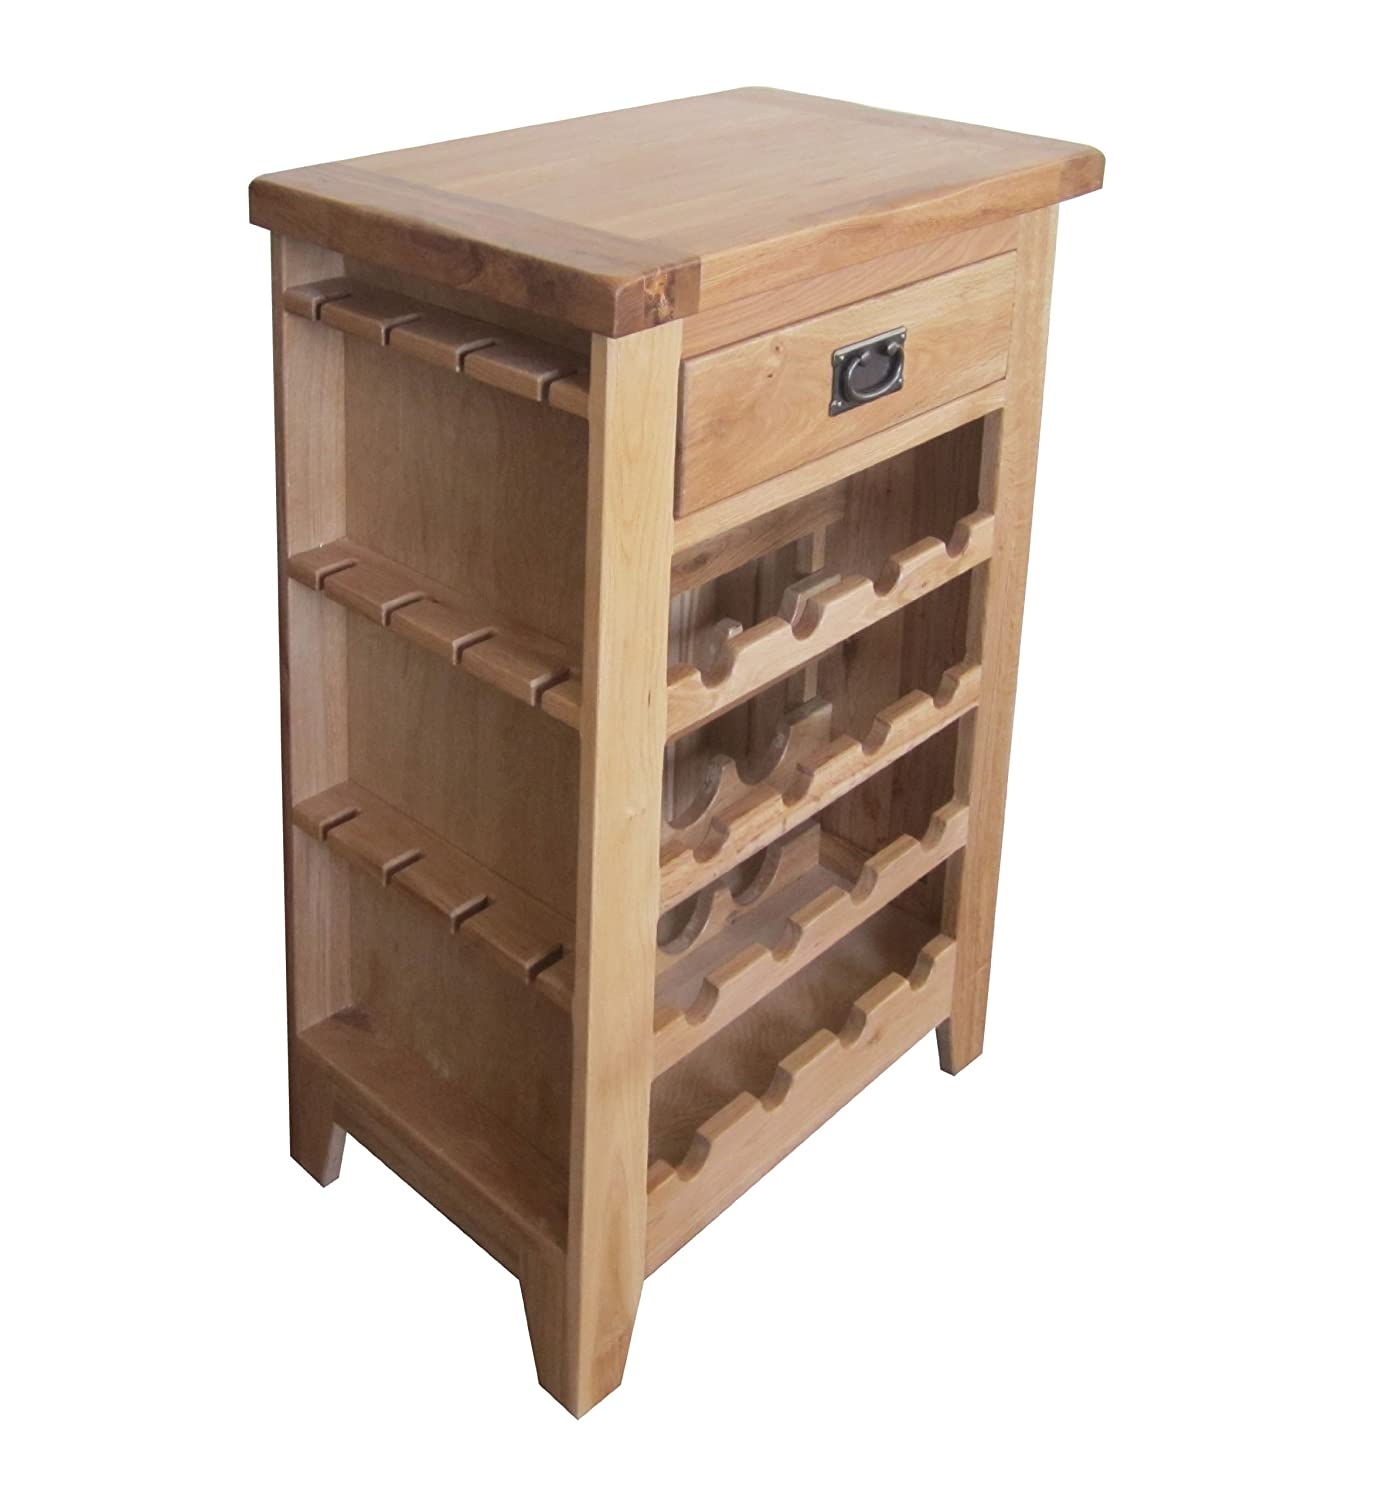 Alton oak corner cabinet oak furniture solutions - Balmoral Natural Oak Rustic Farmhouse Wine Cabinet Rack With Drawer And Wine Glass Holder Amazon Co Uk Kitchen Home